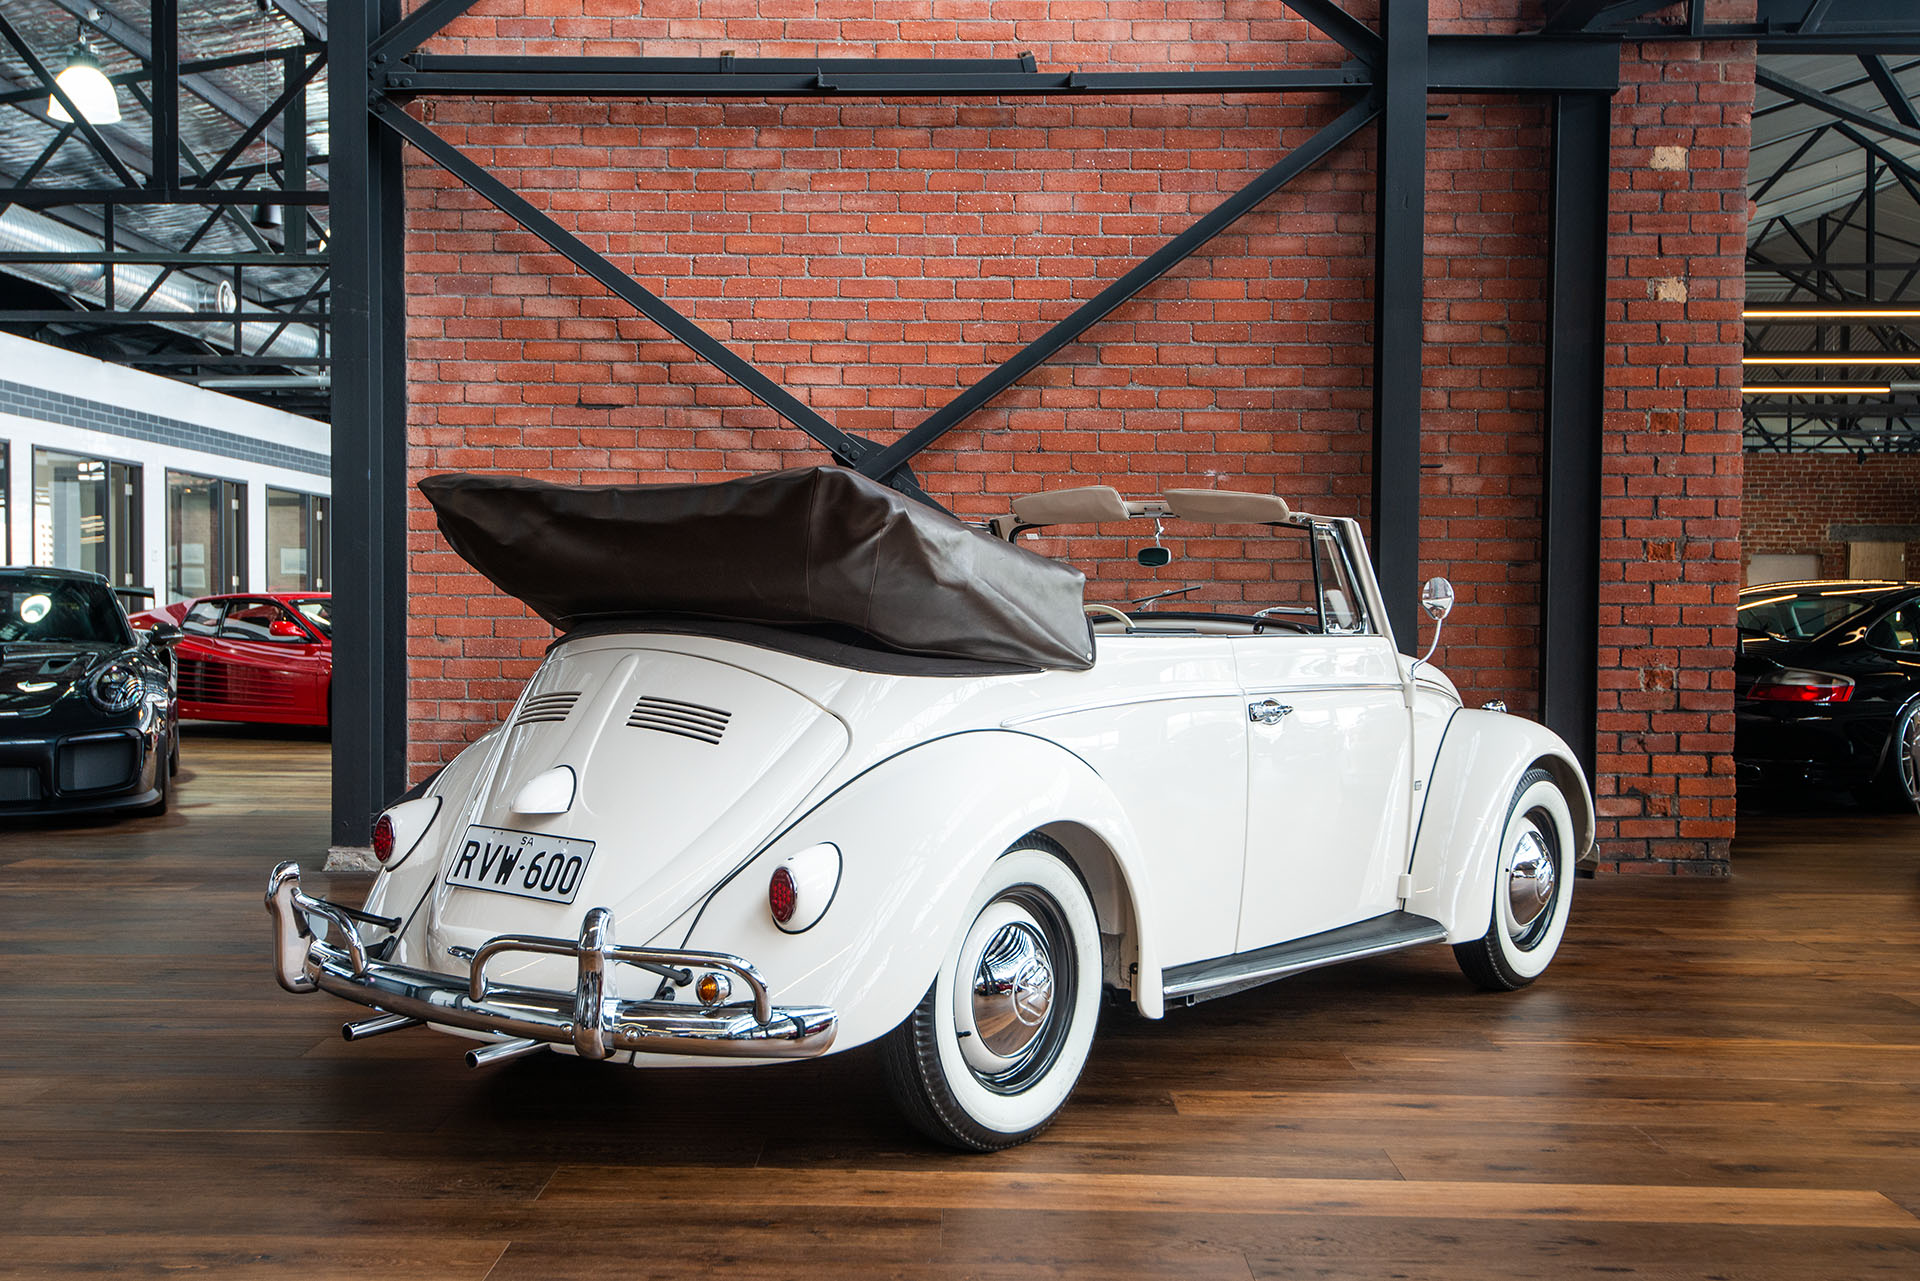 Volkswagen Beetle Convertible >> 1960 Volkswagen Cabriolet - Richmonds - Classic and Prestige Cars - Storage and Sales - Adelaide ...